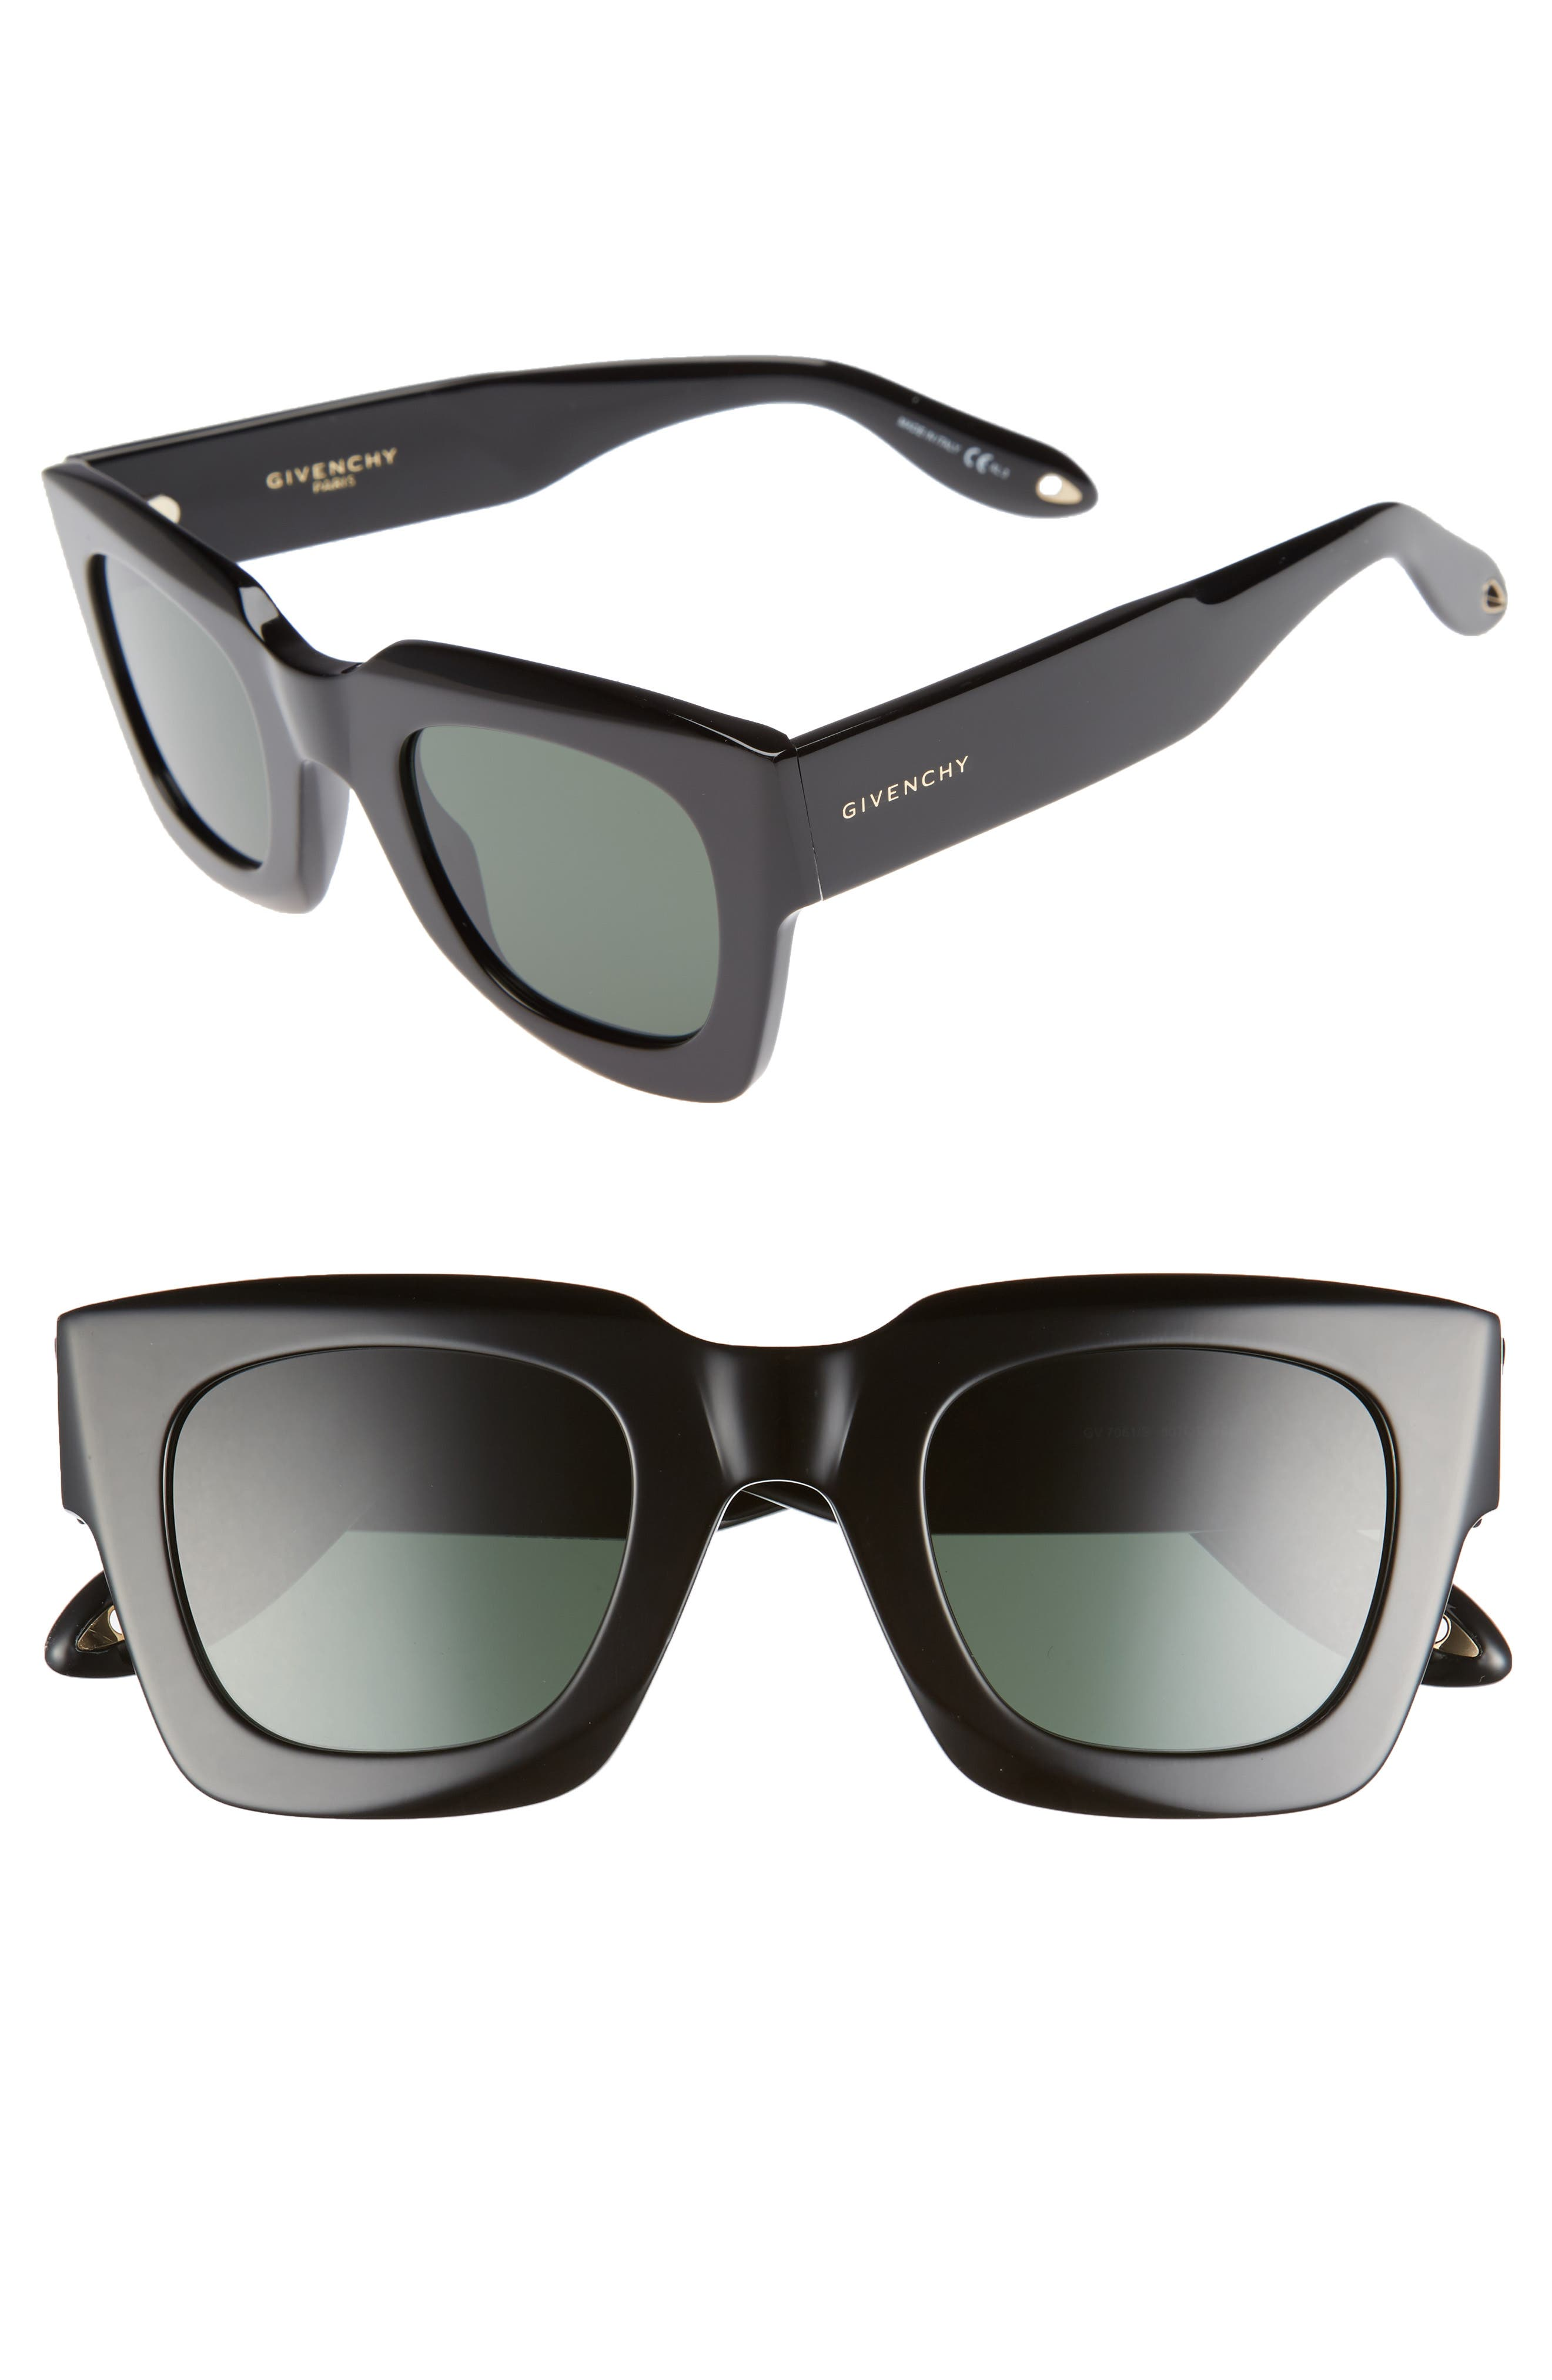 48mm Square Sunglasses,                             Main thumbnail 1, color,                             BLACK